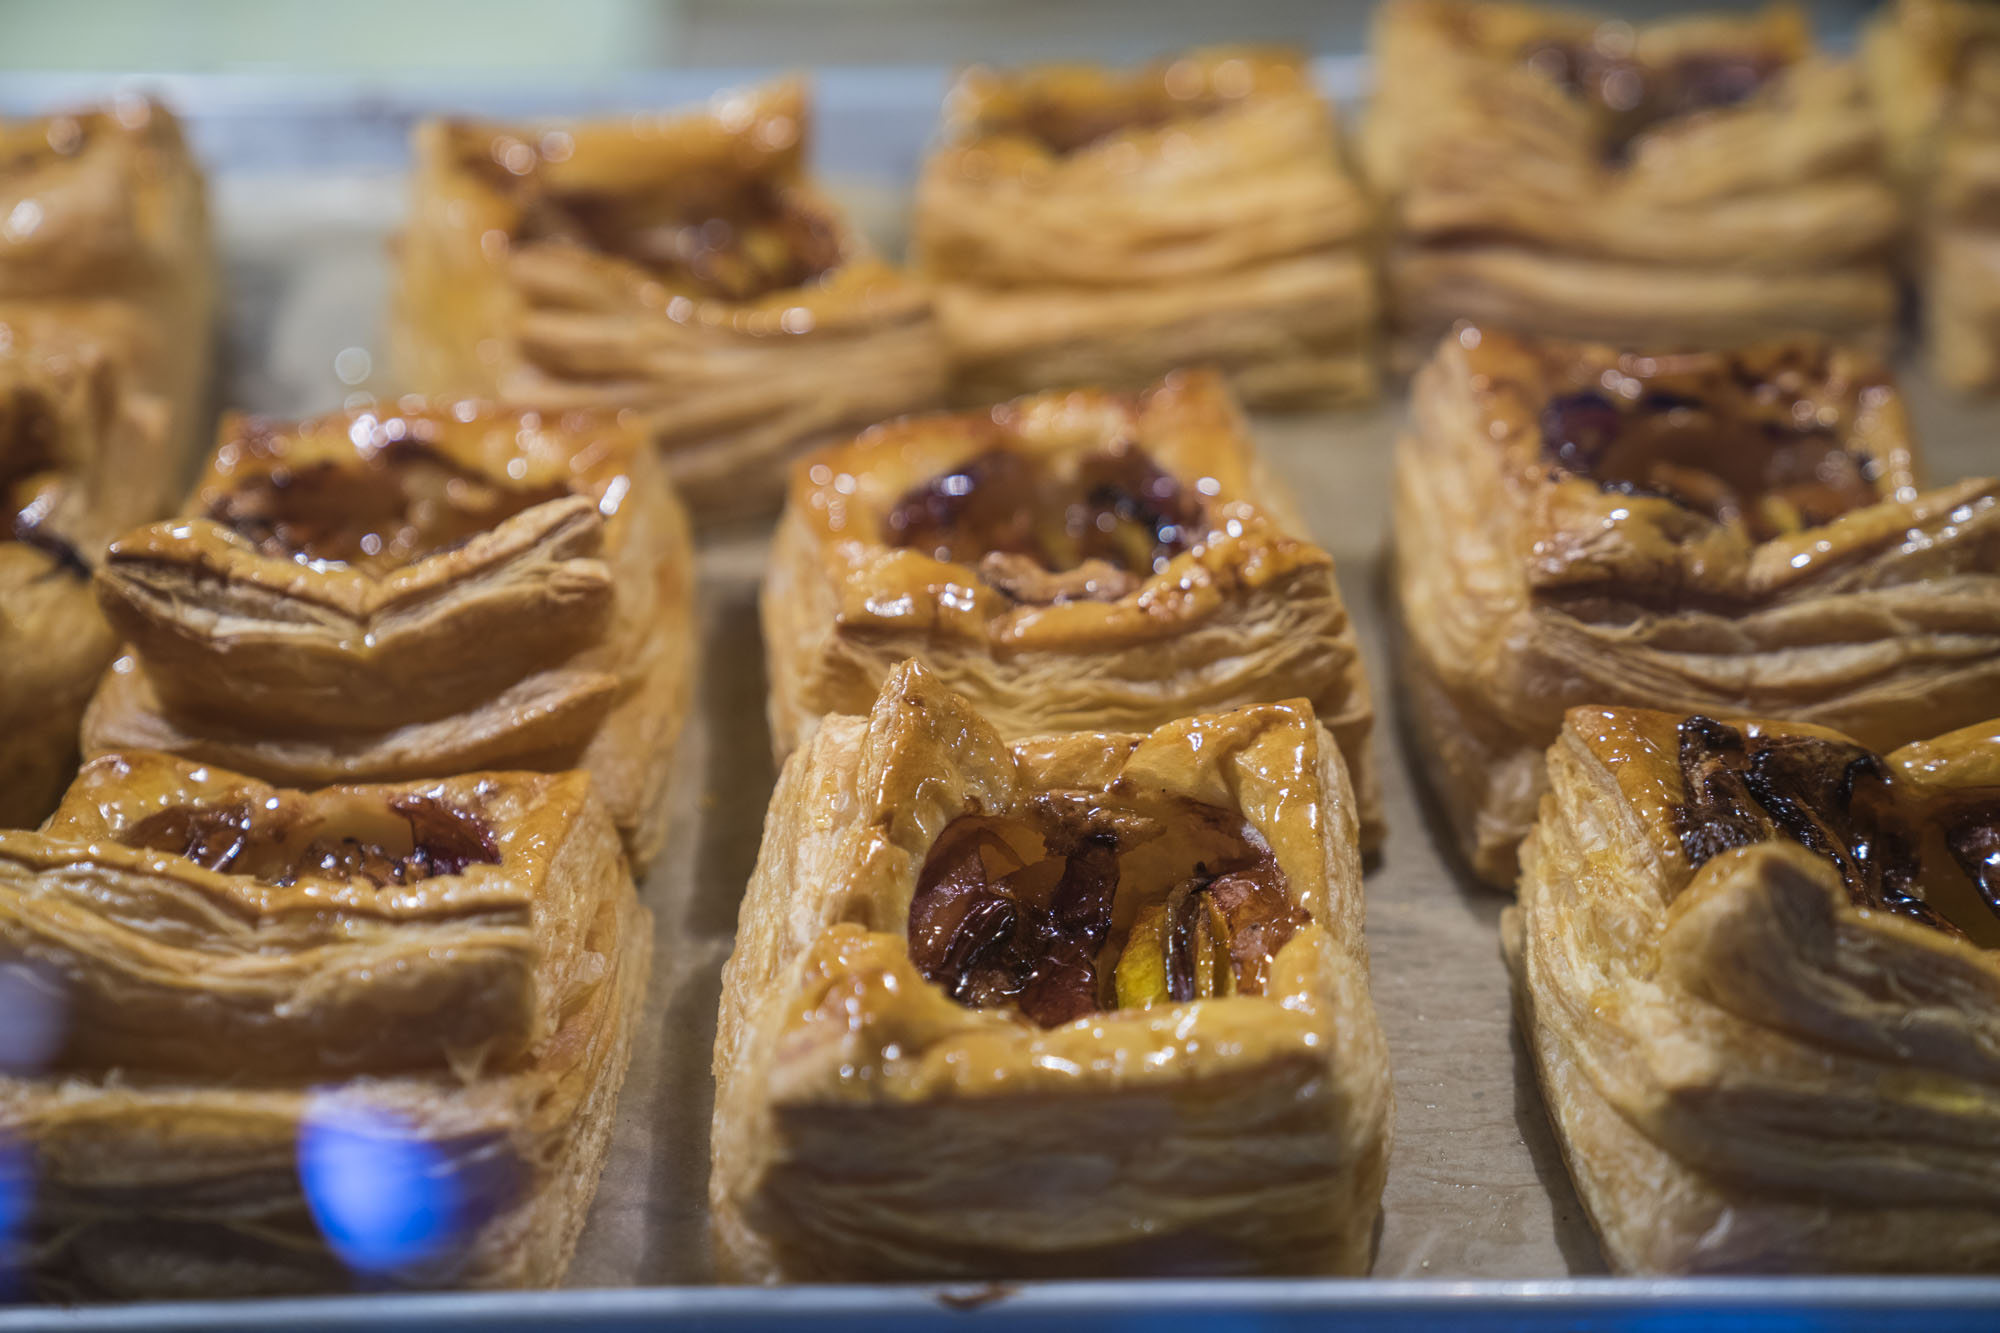 Pastries at Cafe Besalu in Seattle.